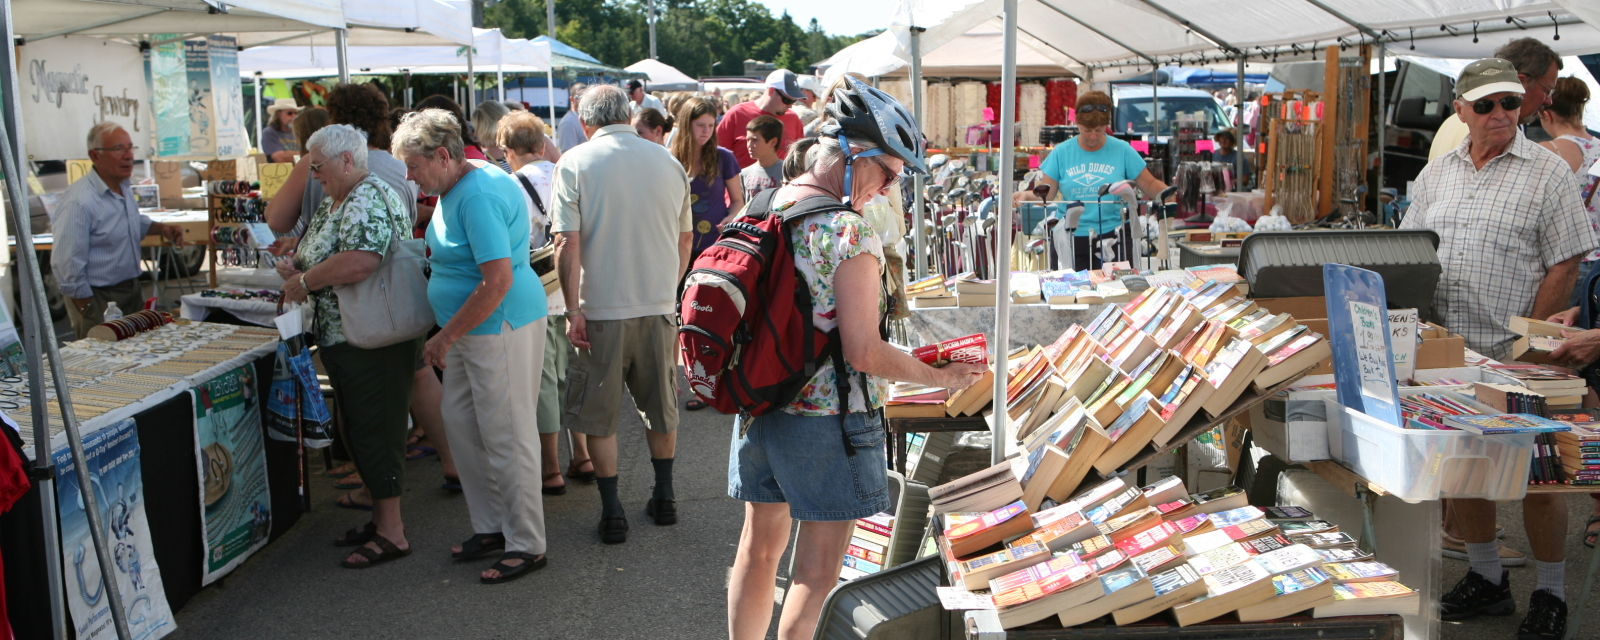 Best Events For Food Vendors Ontario